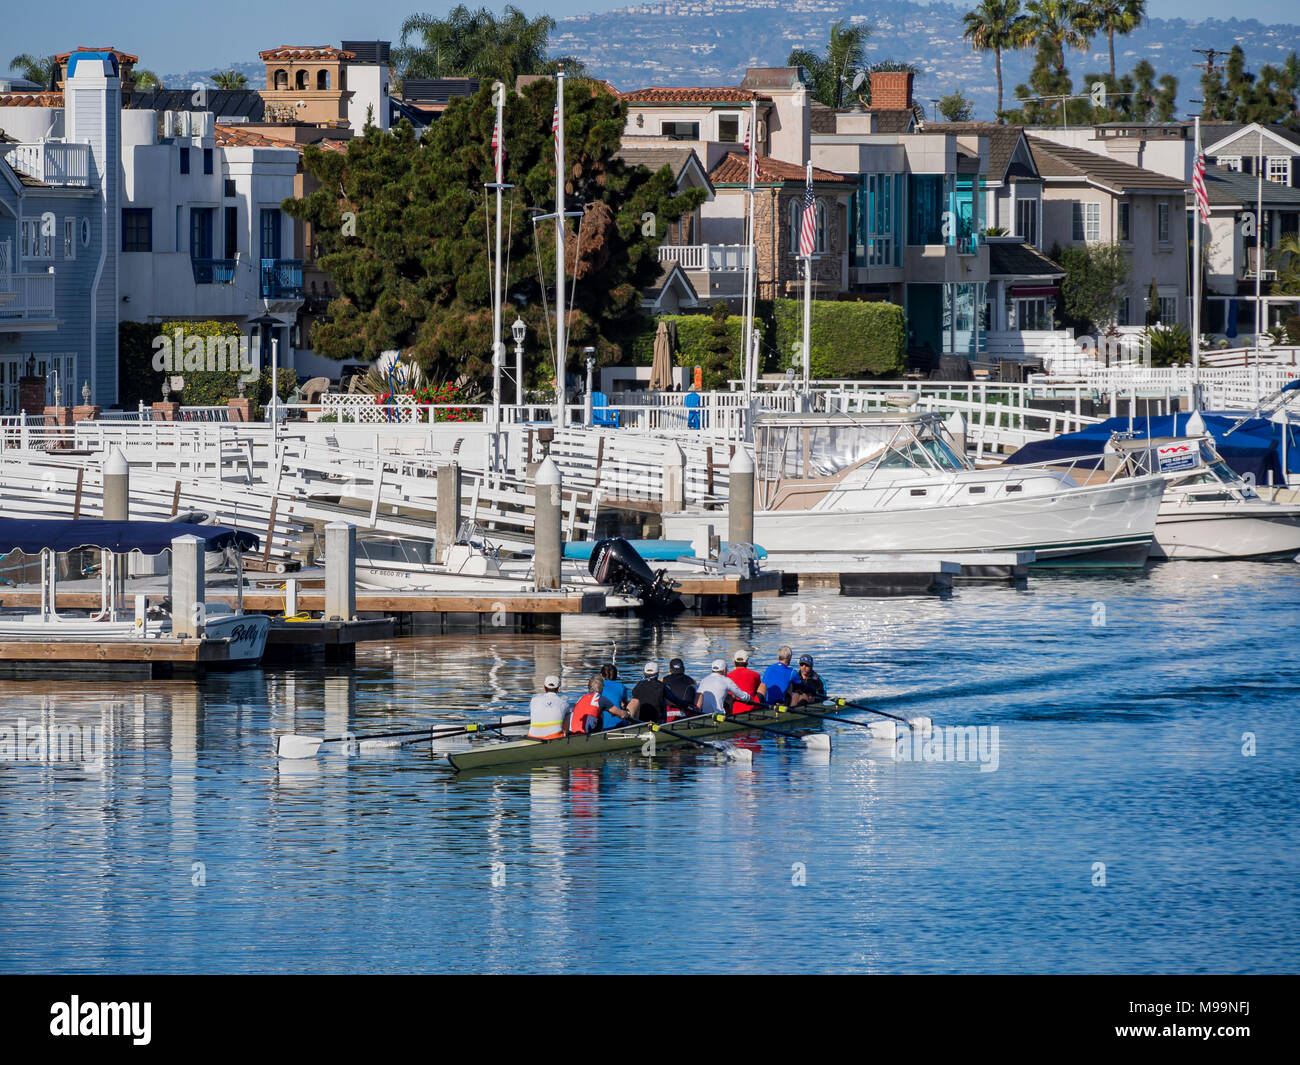 Long beach, MAR 18: Beautiful cityscape with people boating below on MAR 18, 2018 at Long Beach, Los Angeles County, California - Stock Image